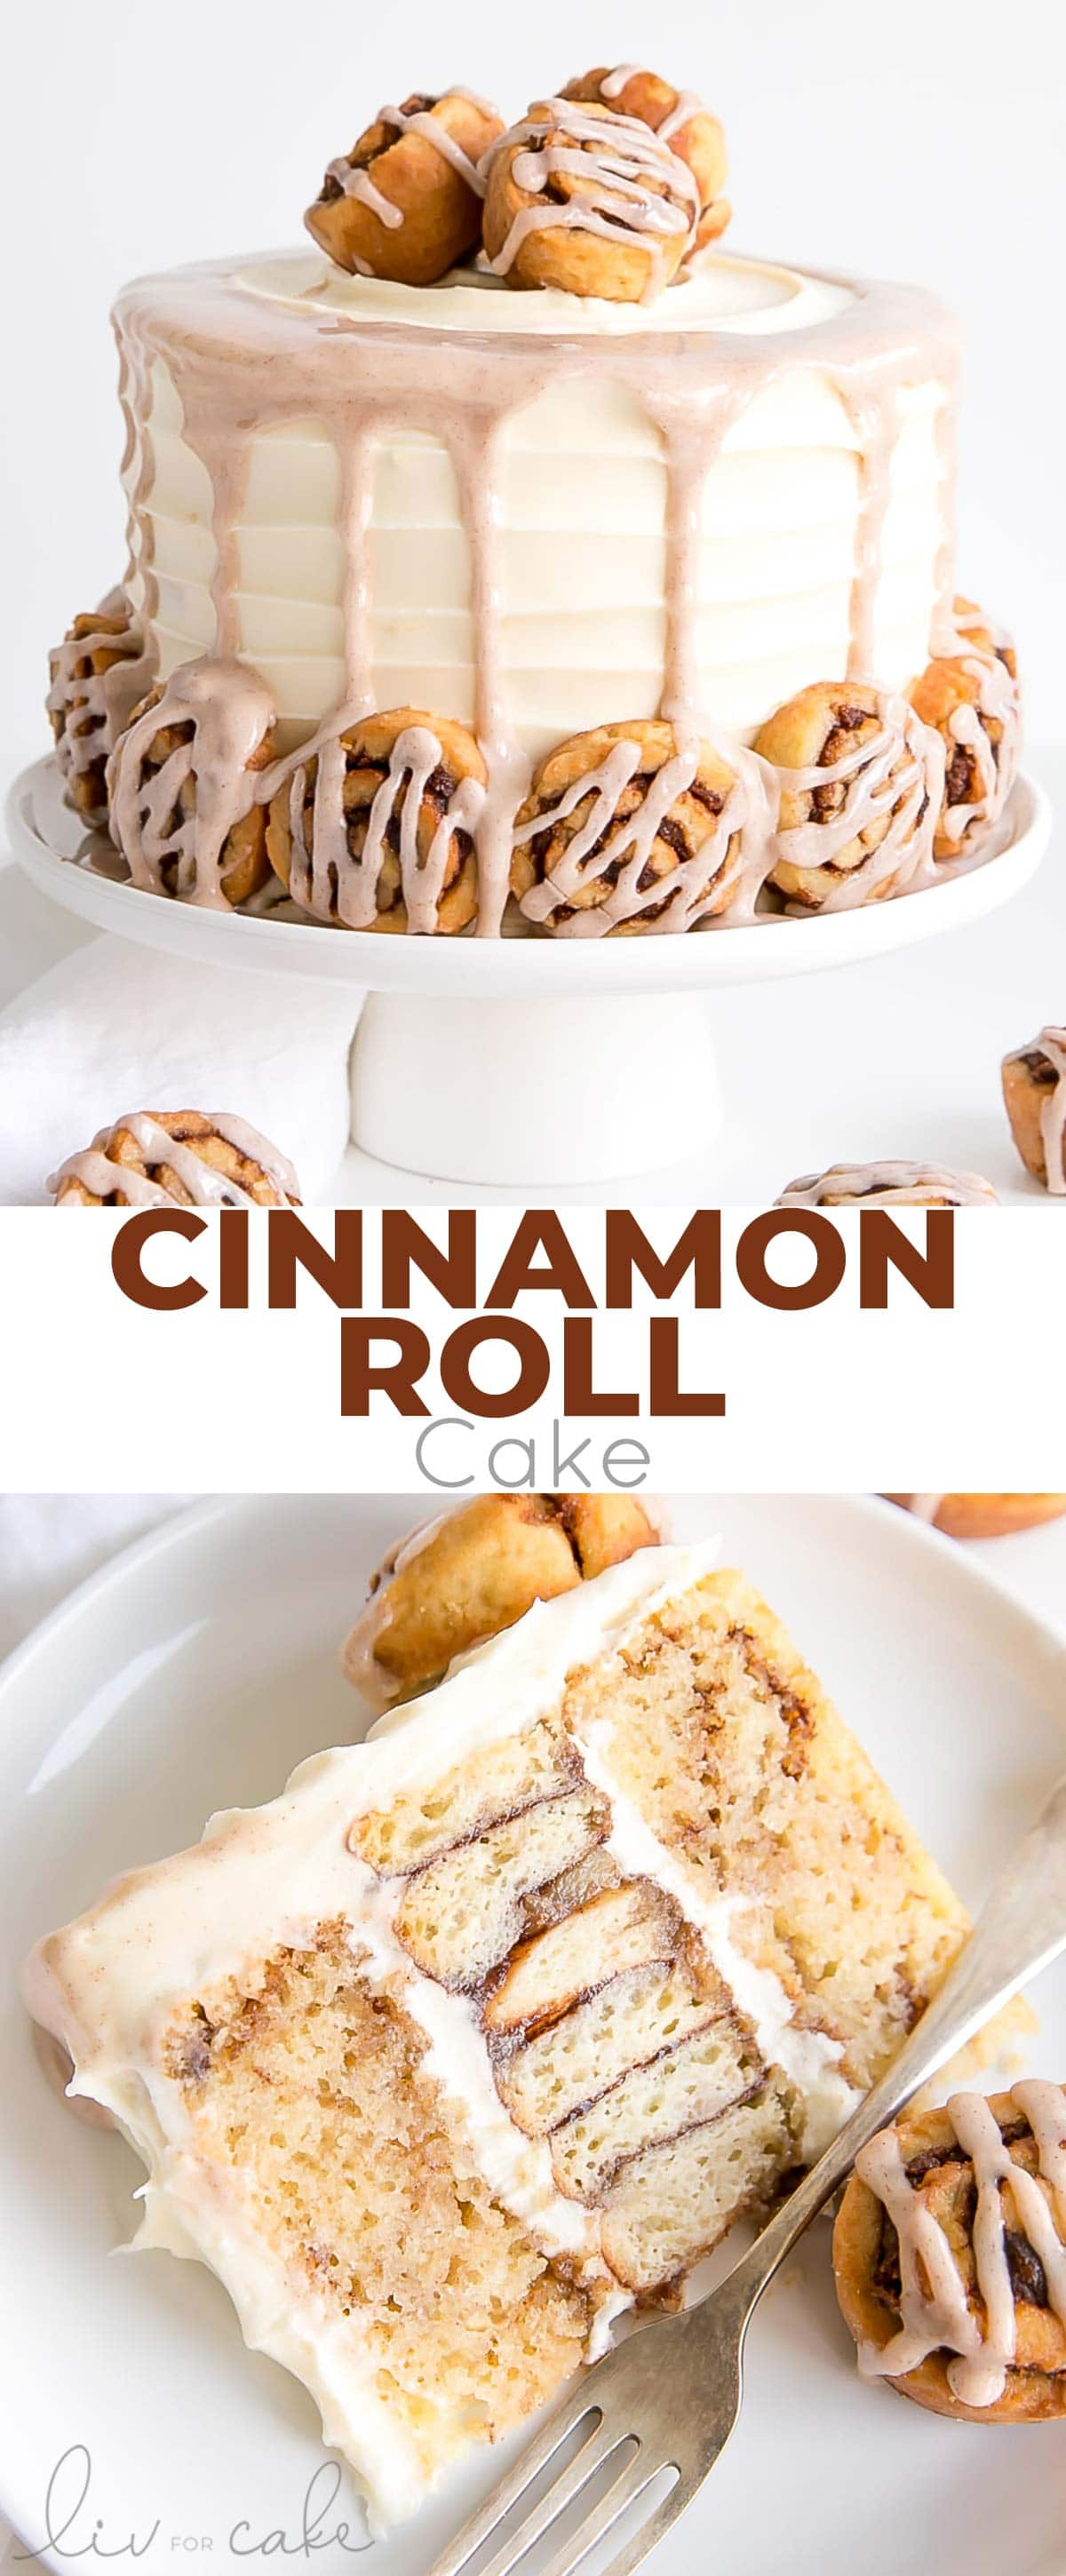 Cinnamon Roll Cake collage.